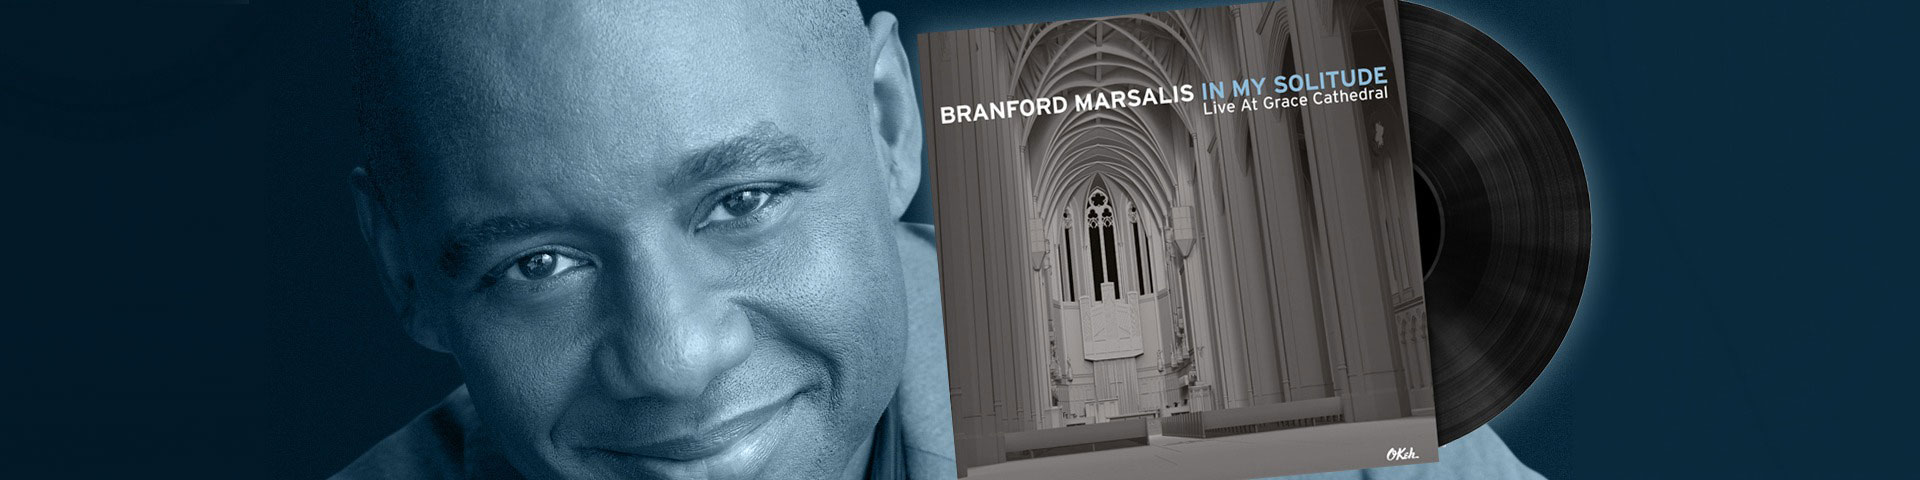 BRANFORD MARSALIS - IN MY SOLITUDE